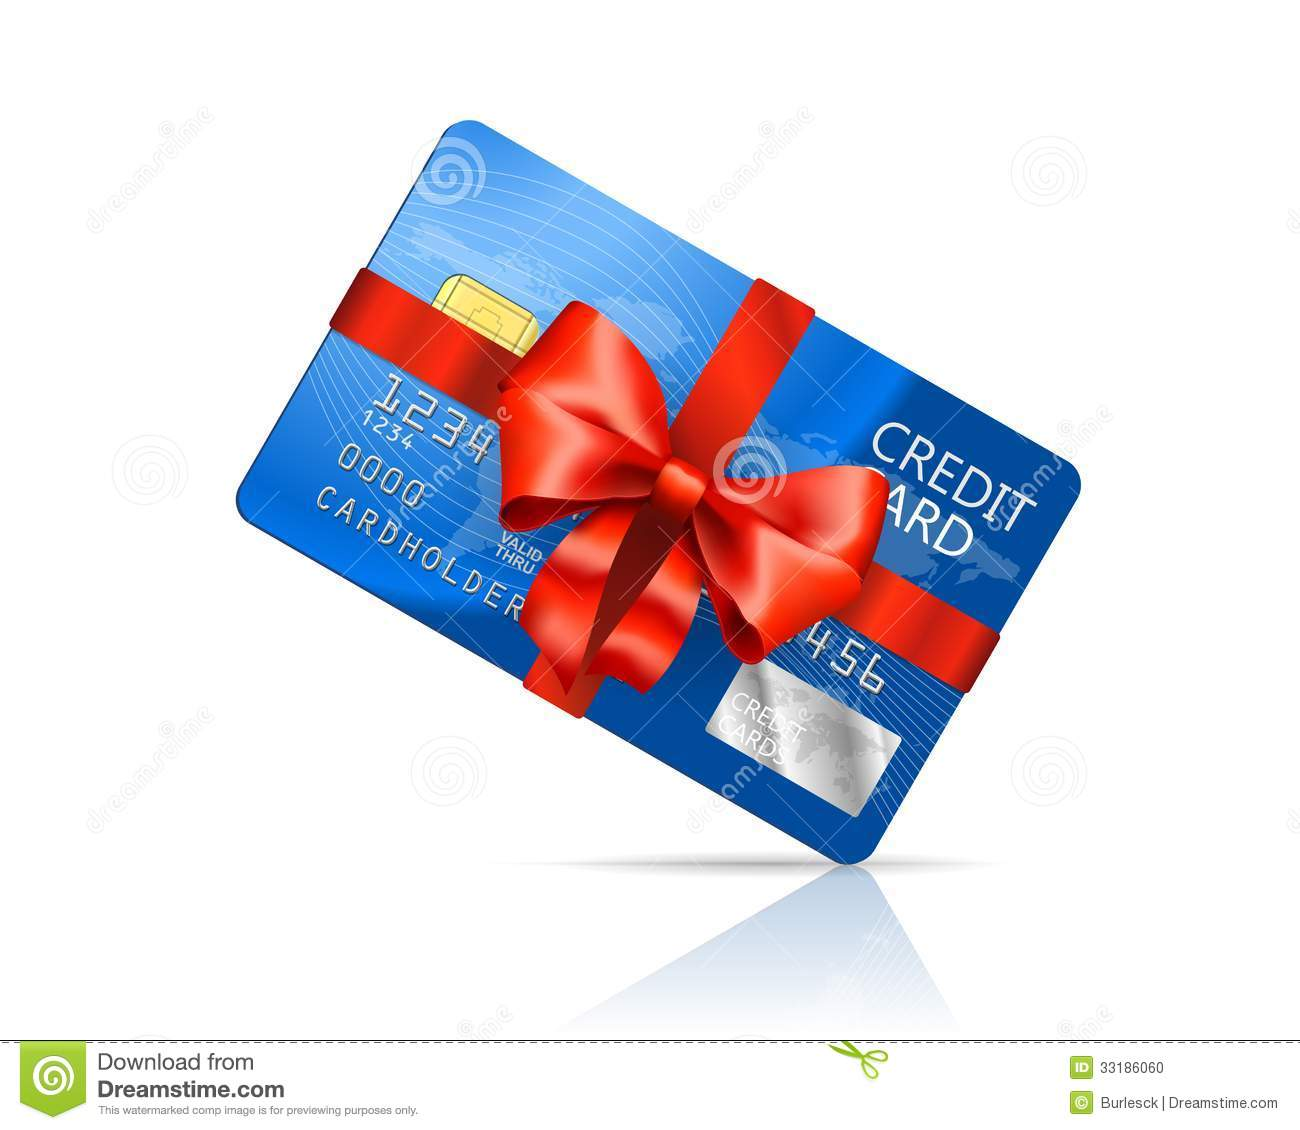 Personal Gift Cards. Find a perfect Gift Card for your friends and family. Select a design for any occasion, and you can include a custom message along with your gift. Only credit, charge, and debit cards as well as fully registered and approved general purpose reloadable cards may be used to make purchases on the site. Single load cards (e.